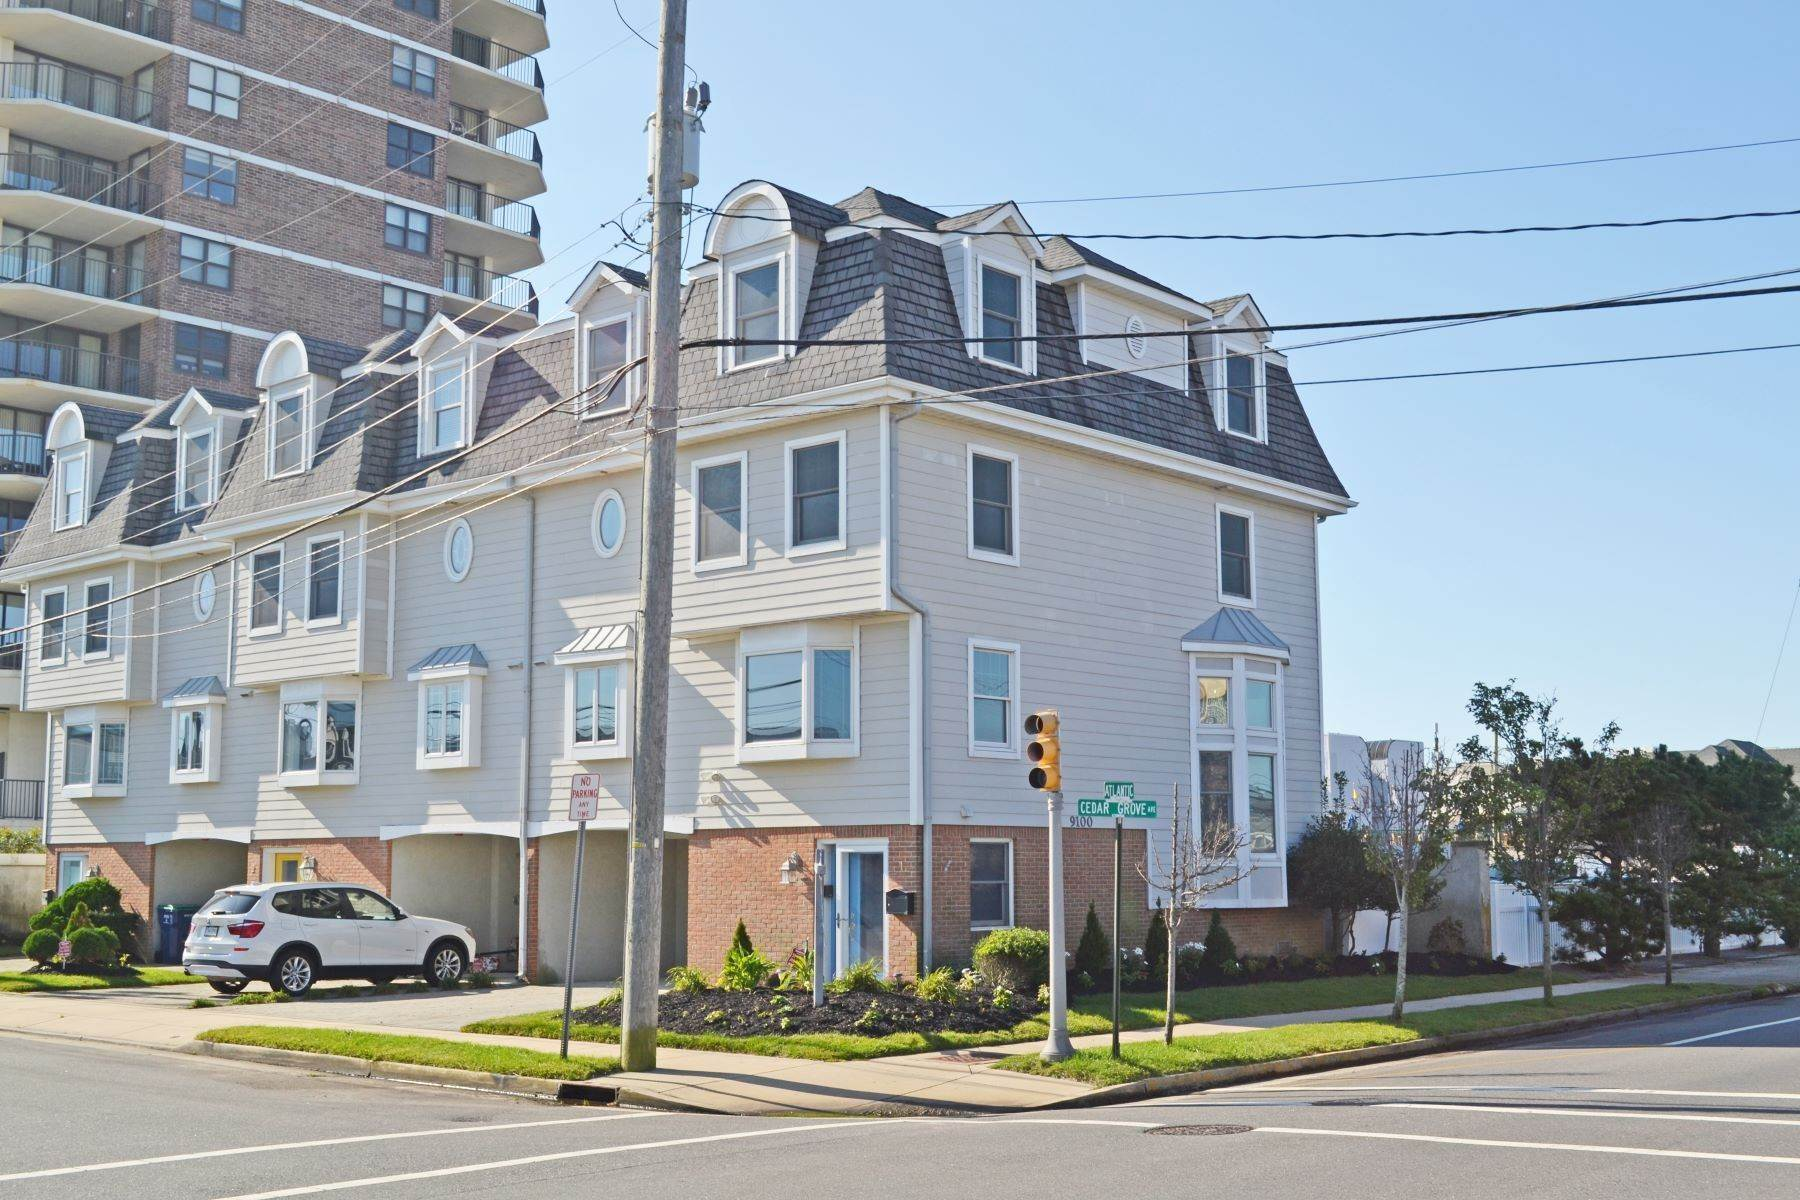 townhouses at Island House 9100 Atlantic, #1 Margate, New Jersey 08402 United States